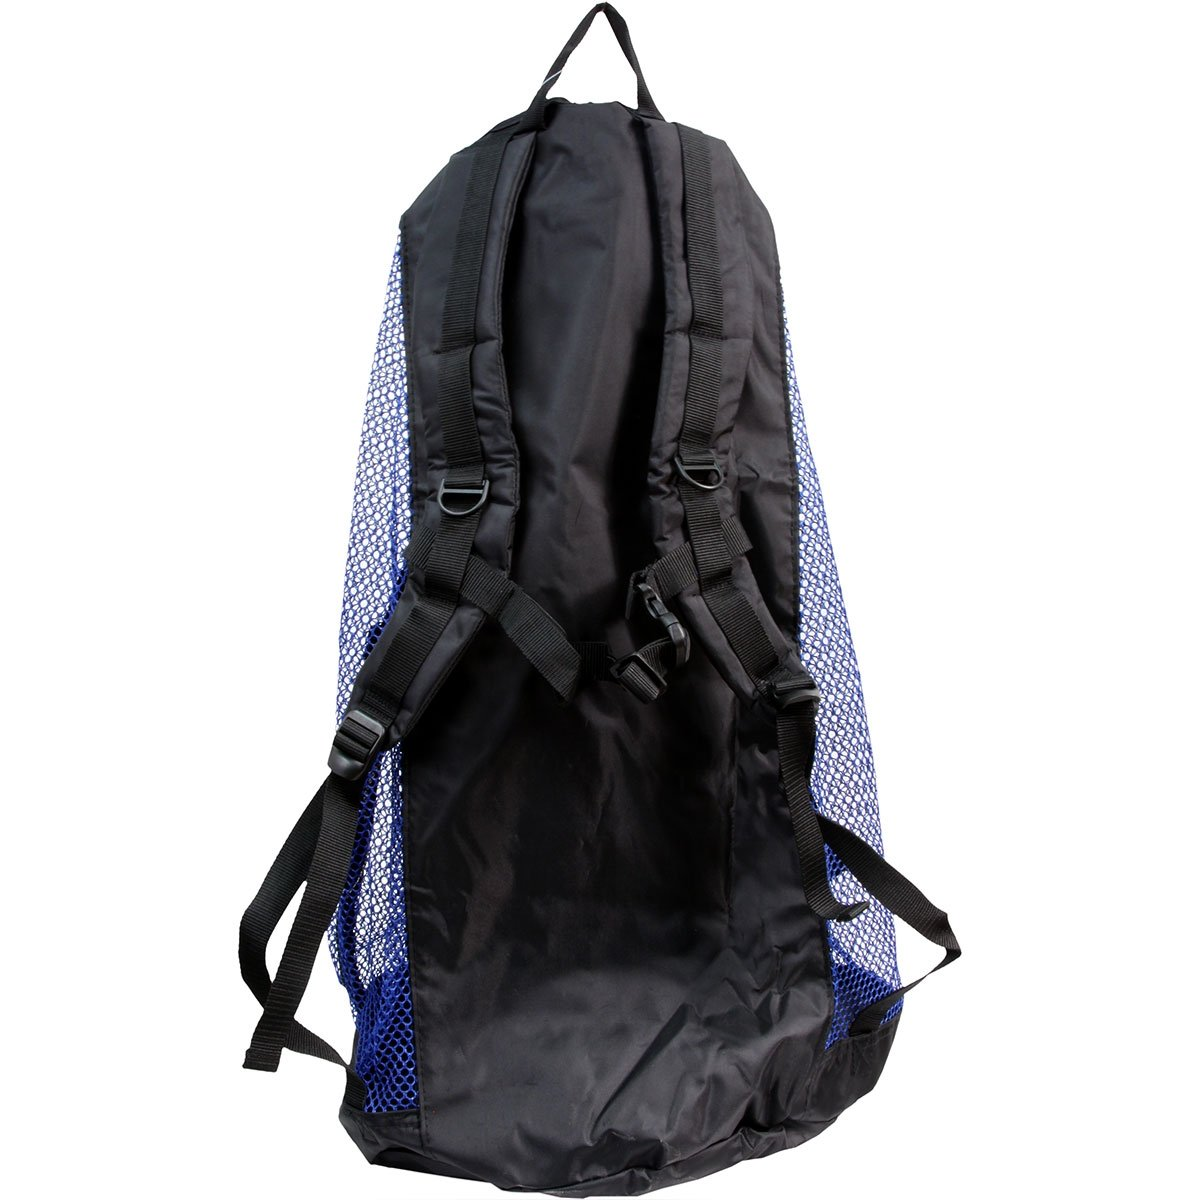 Armor Heavy Duty Nylon Mesh Backpack (Blue) Perfect for Diving or any beach/boating trip